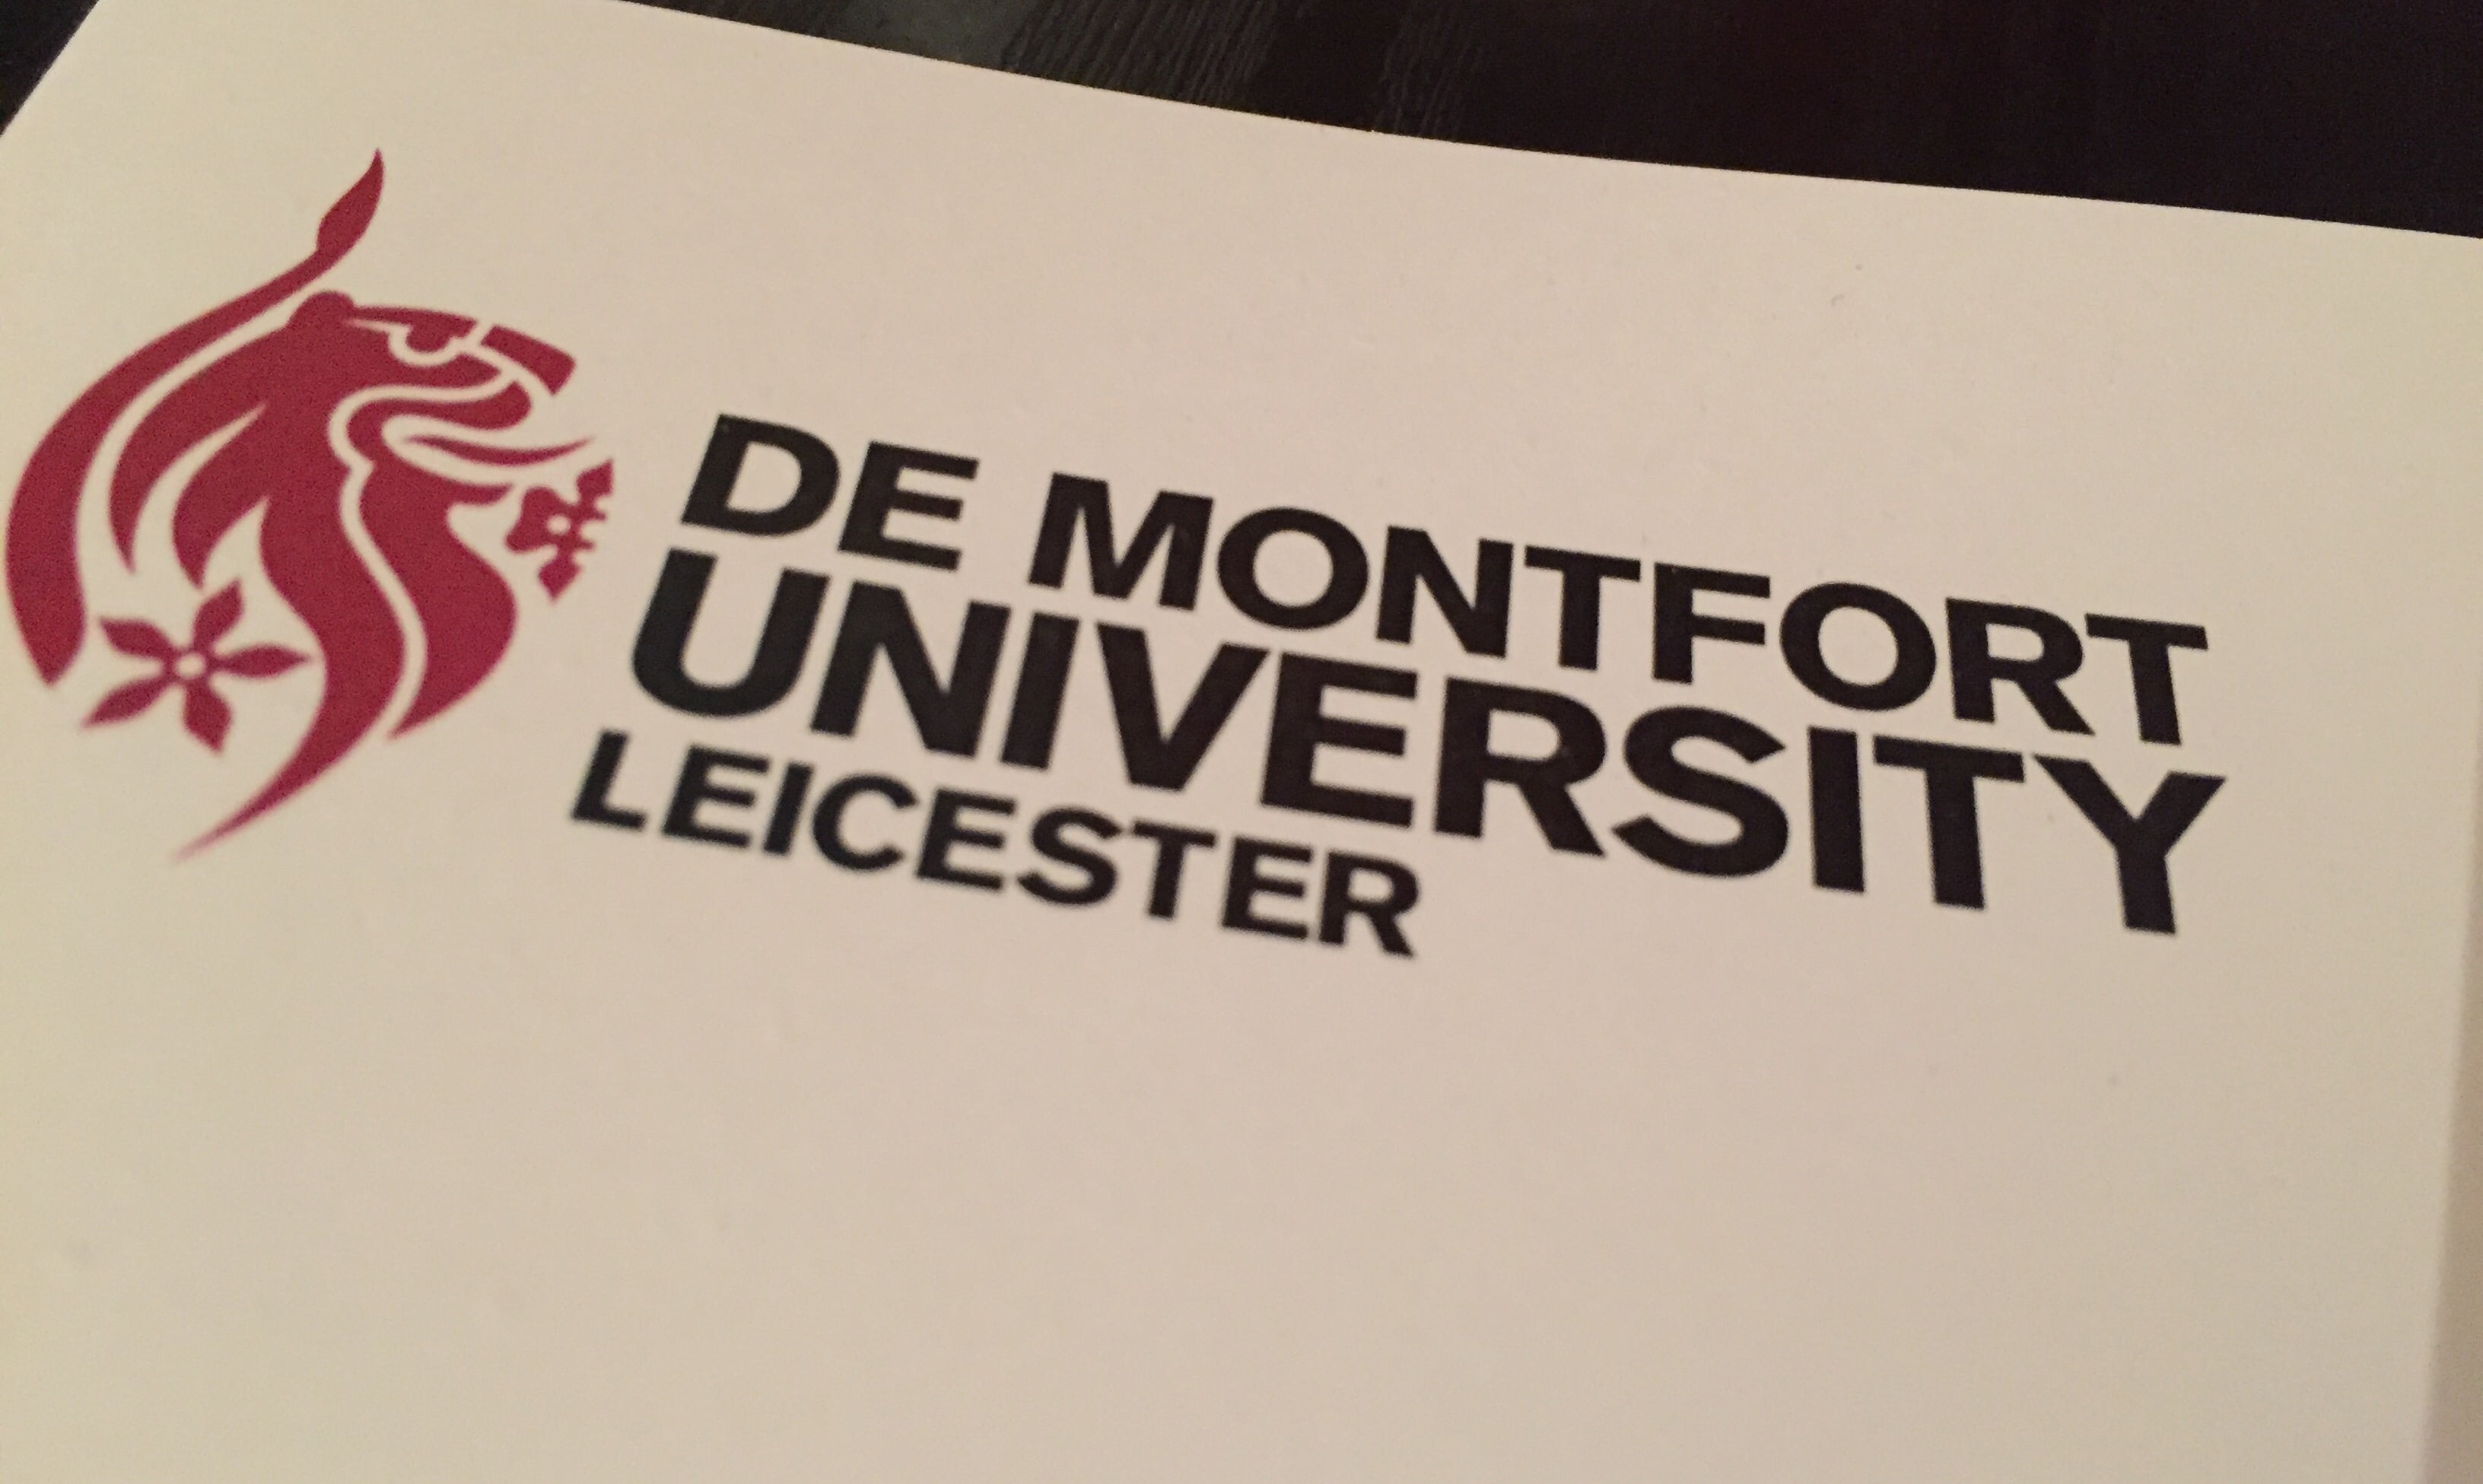 De Montfort student is suspended